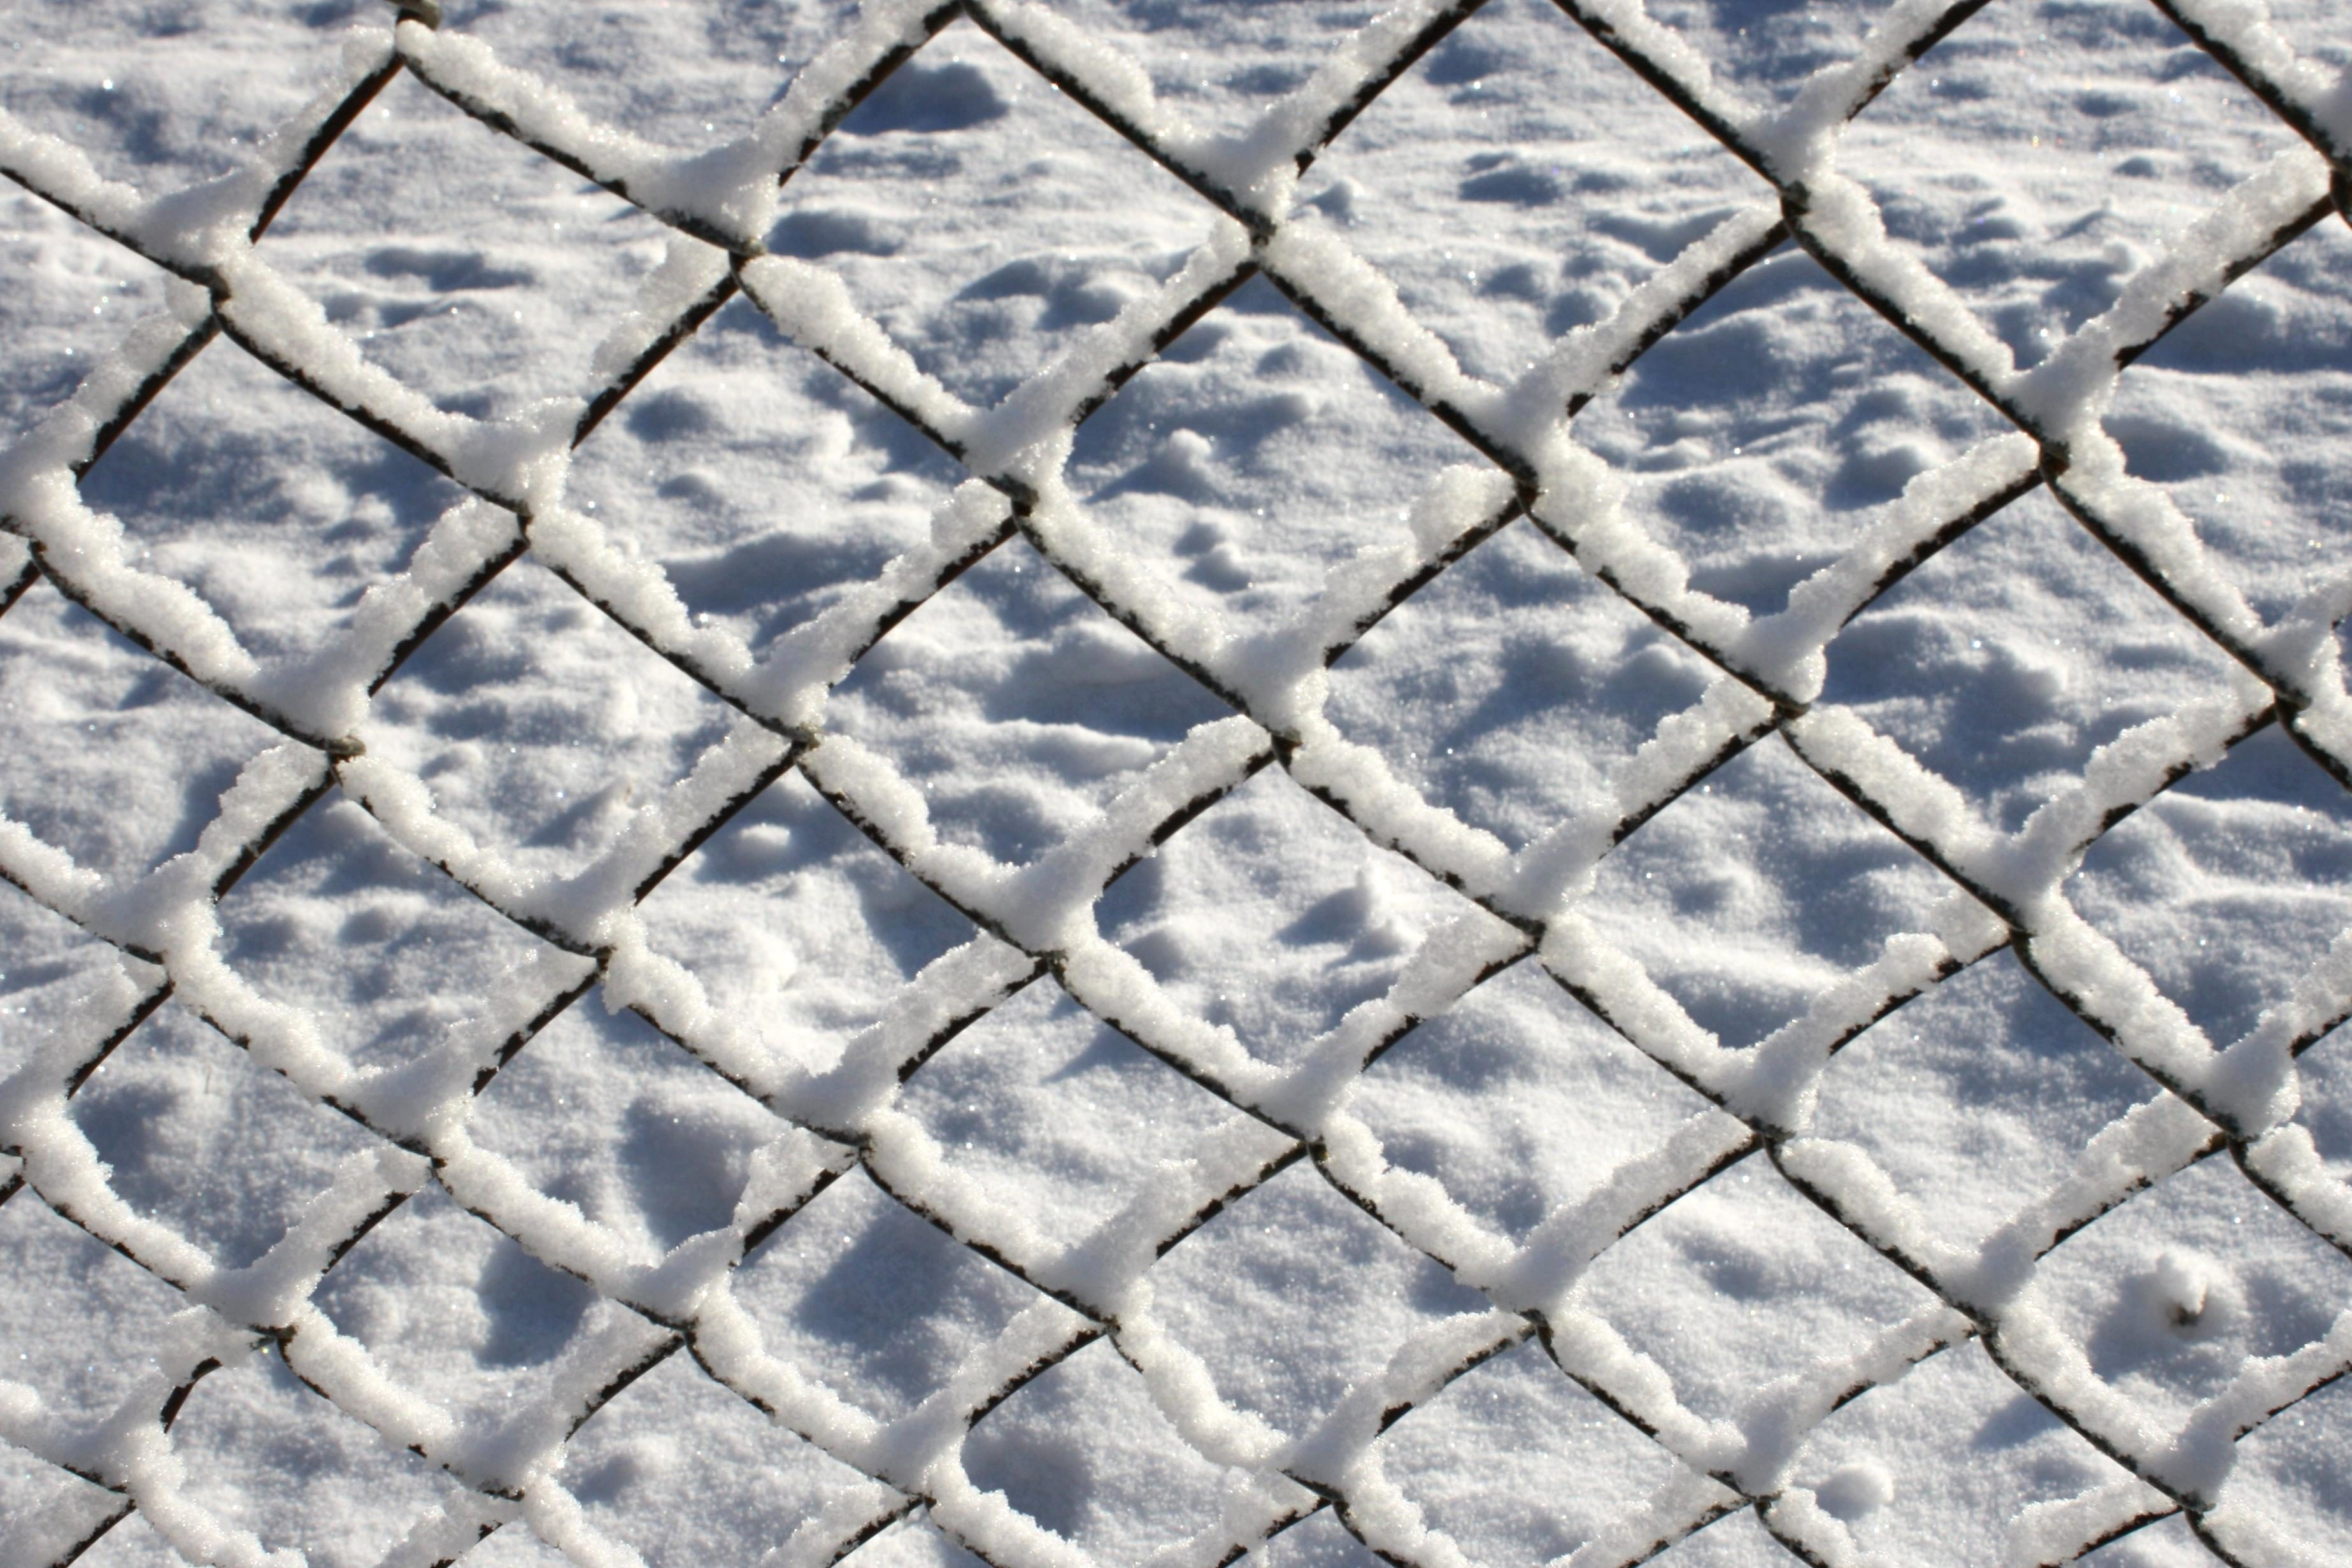 Free picture: wire fence, coated, snow